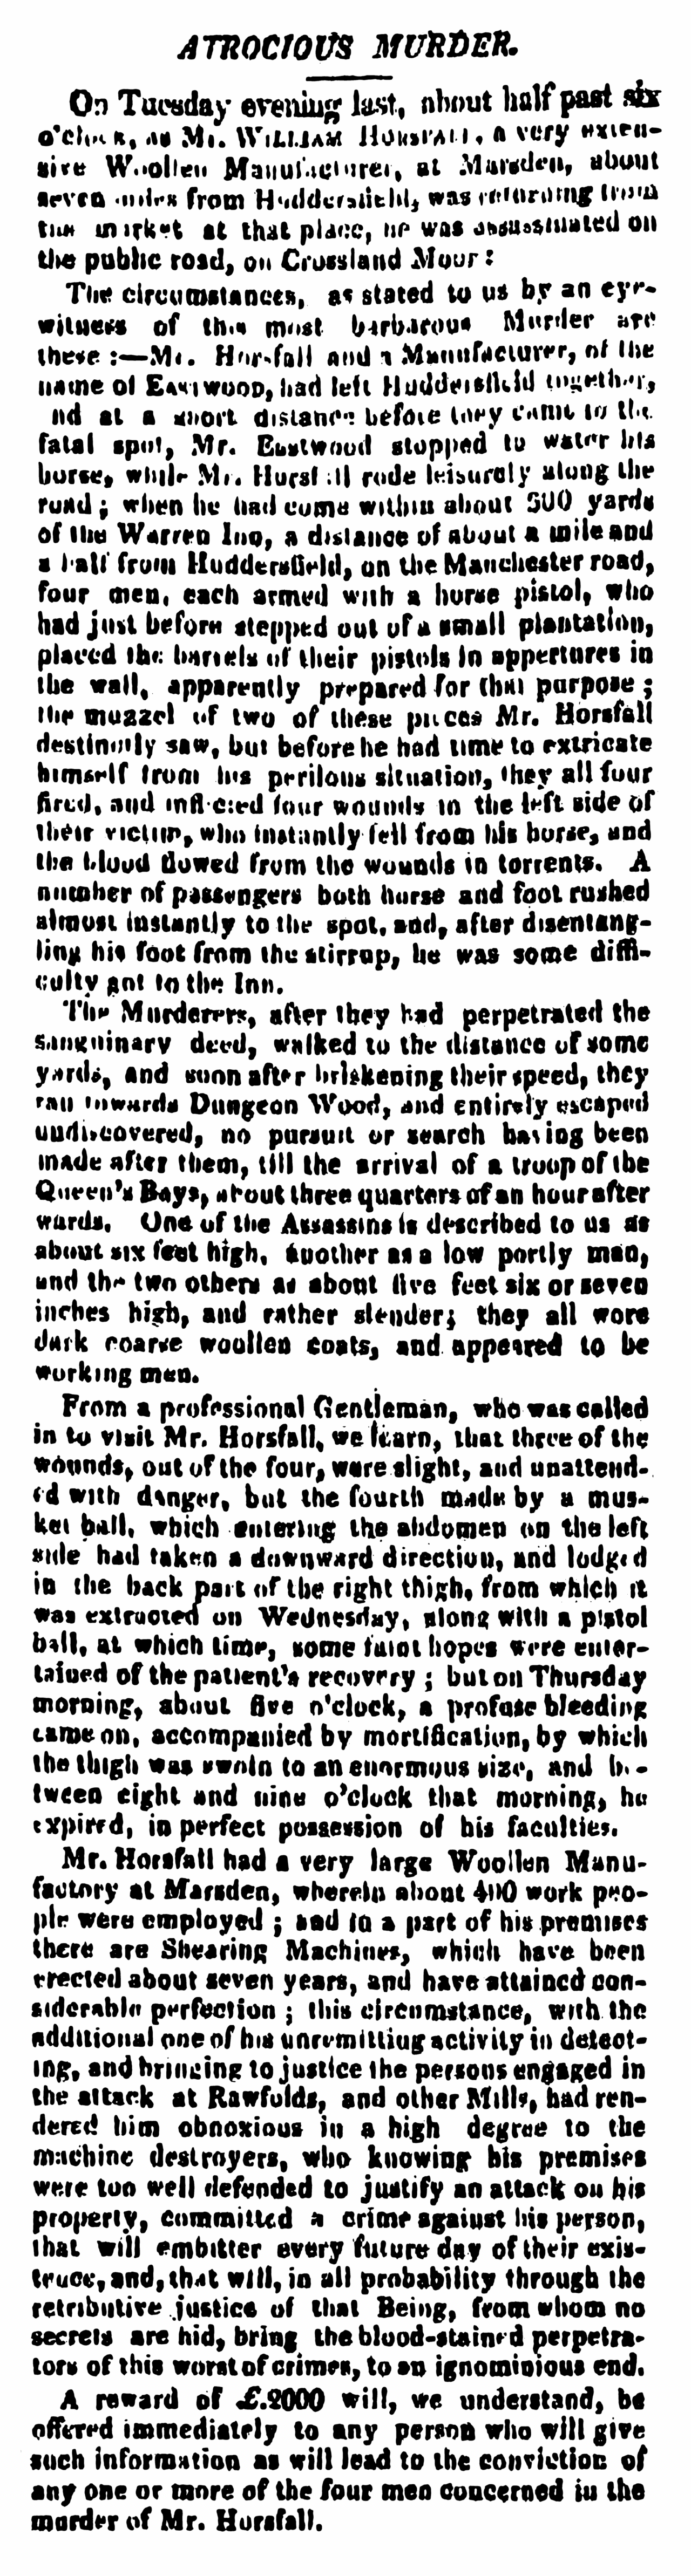 Murder of William Horsfall - Leeds Mercury 02 May 1812